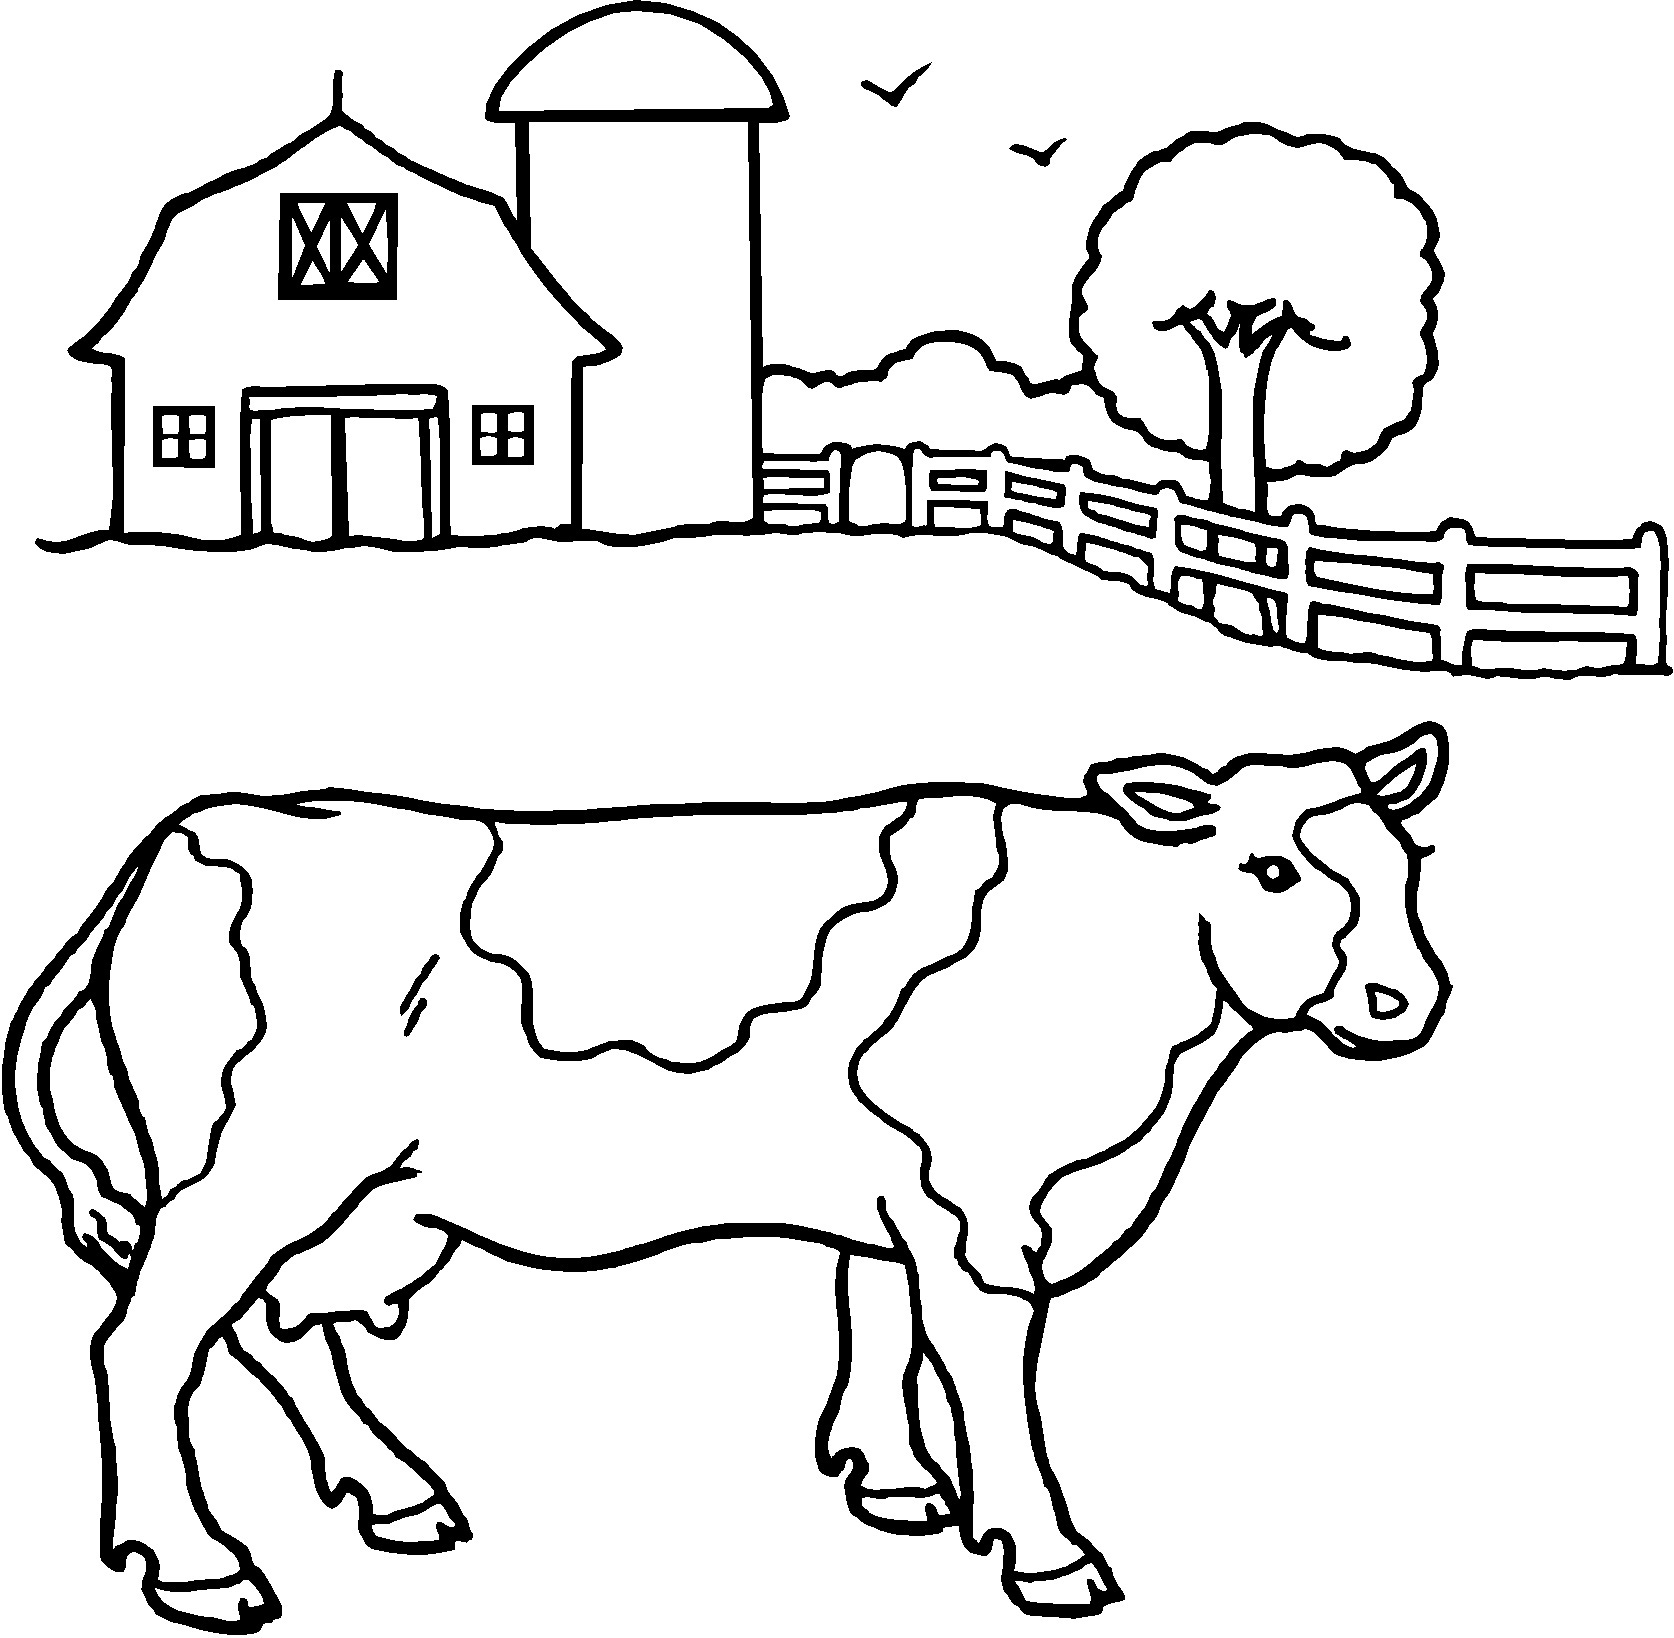 1674x1638 Cow Coloring Page Pages Kids Tunisientunisie Inside